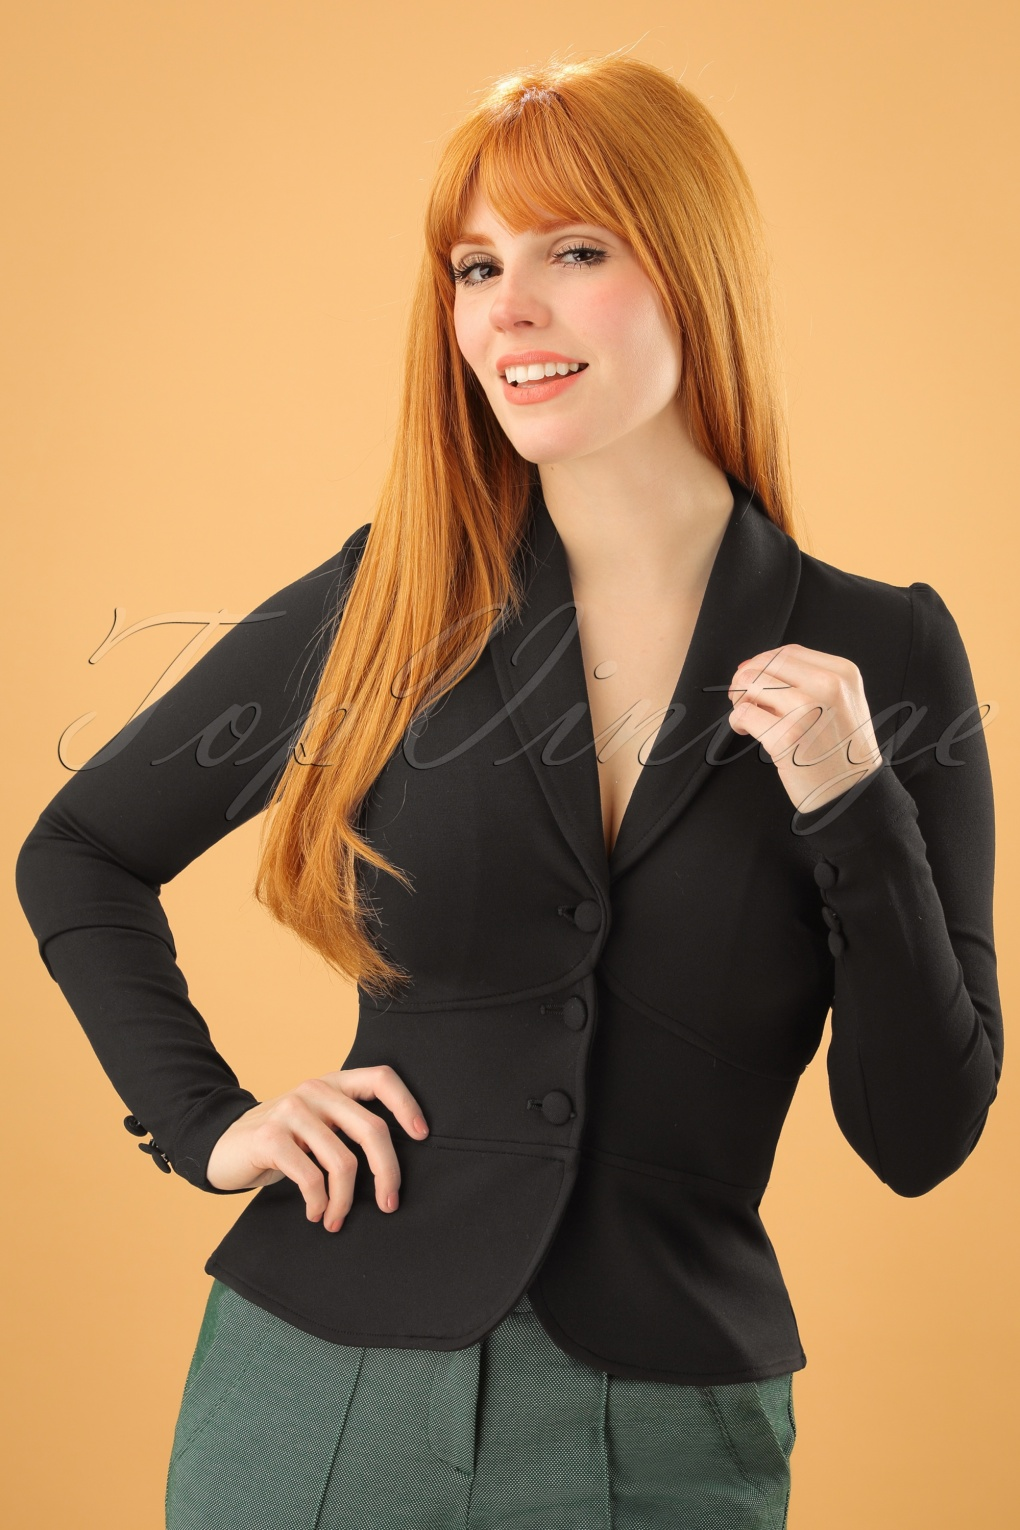 Vintage Coats & Jackets | Retro Coats and Jackets Smoking Jacket Milano in Black £90.68 AT vintagedancer.com